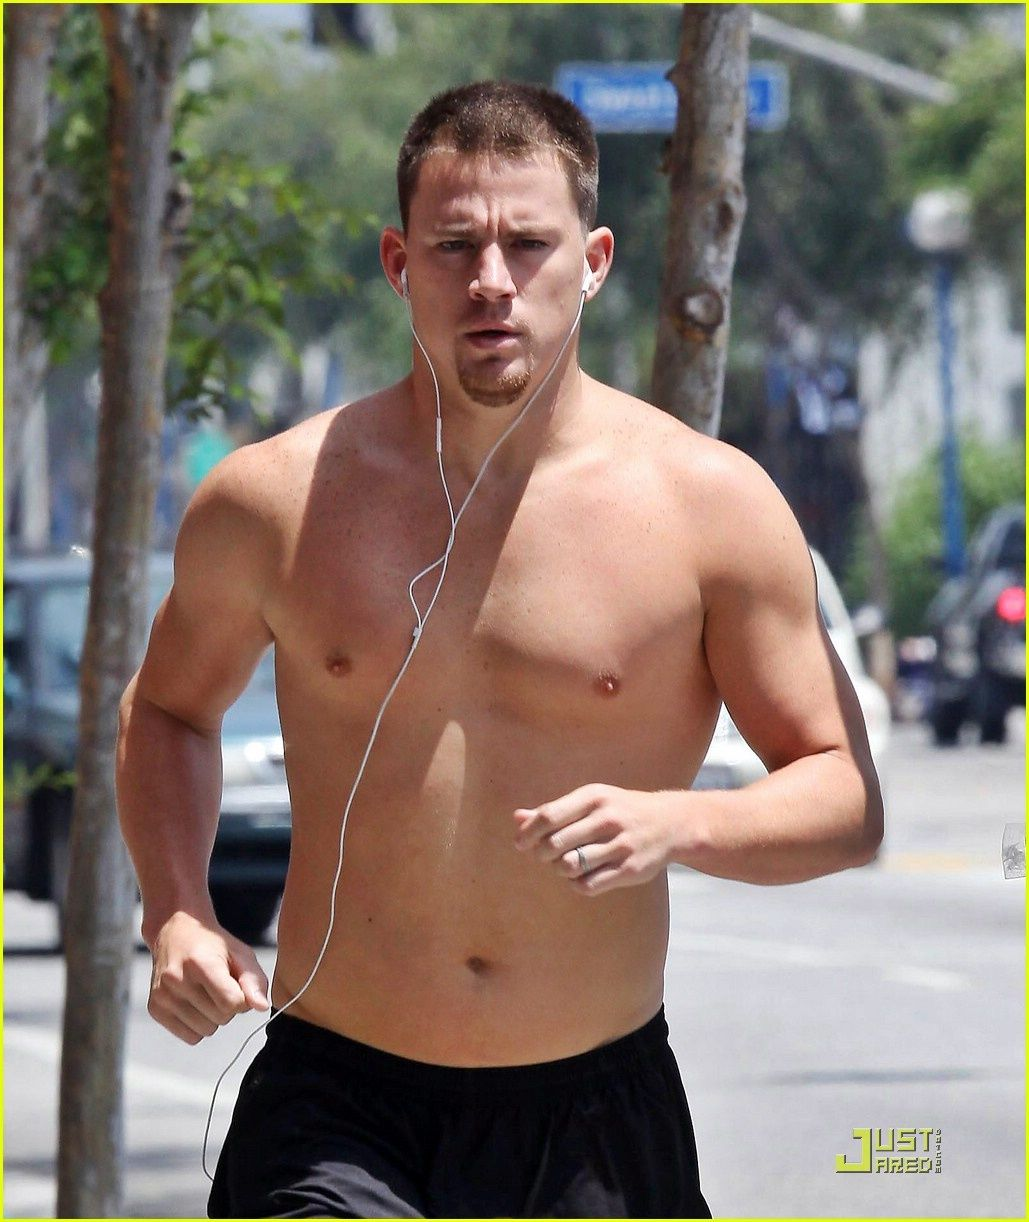 Pin On The Ever Sexy Channing Tatum